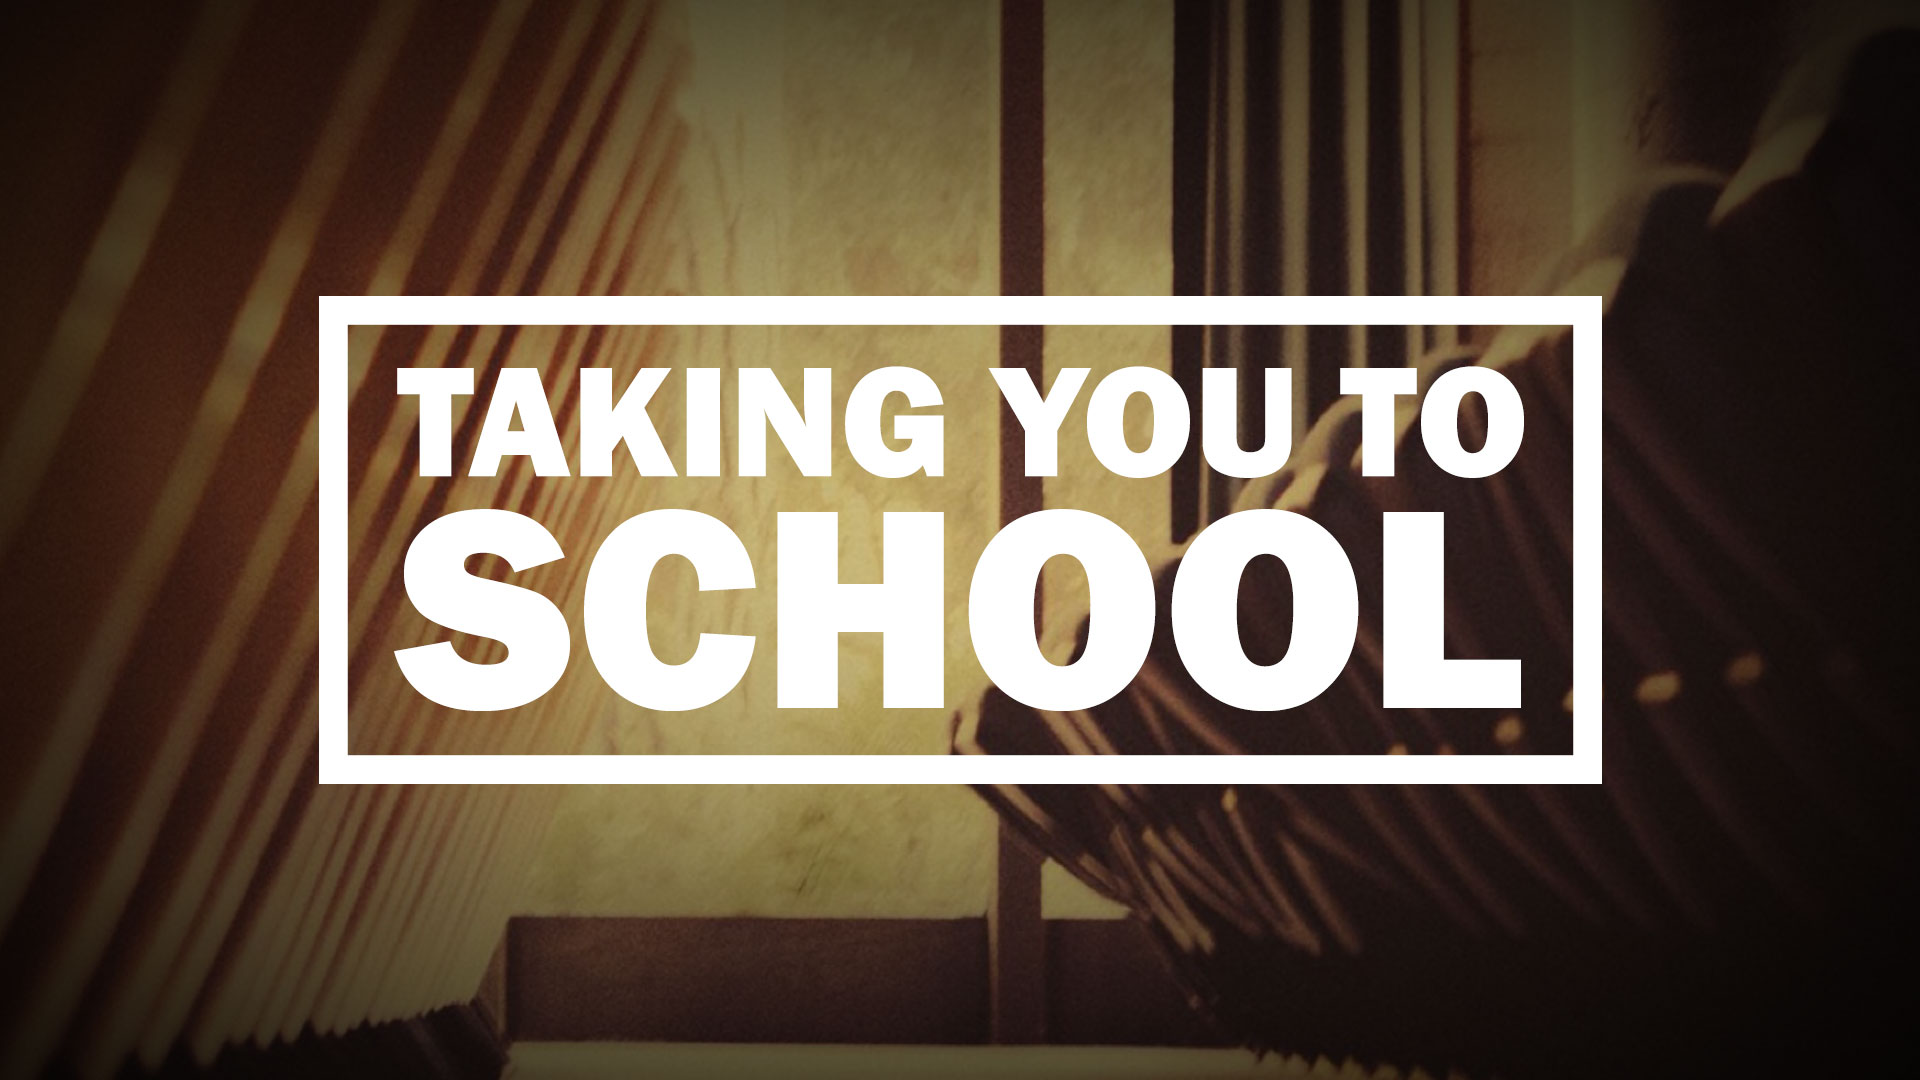 Listen to Taking You To School